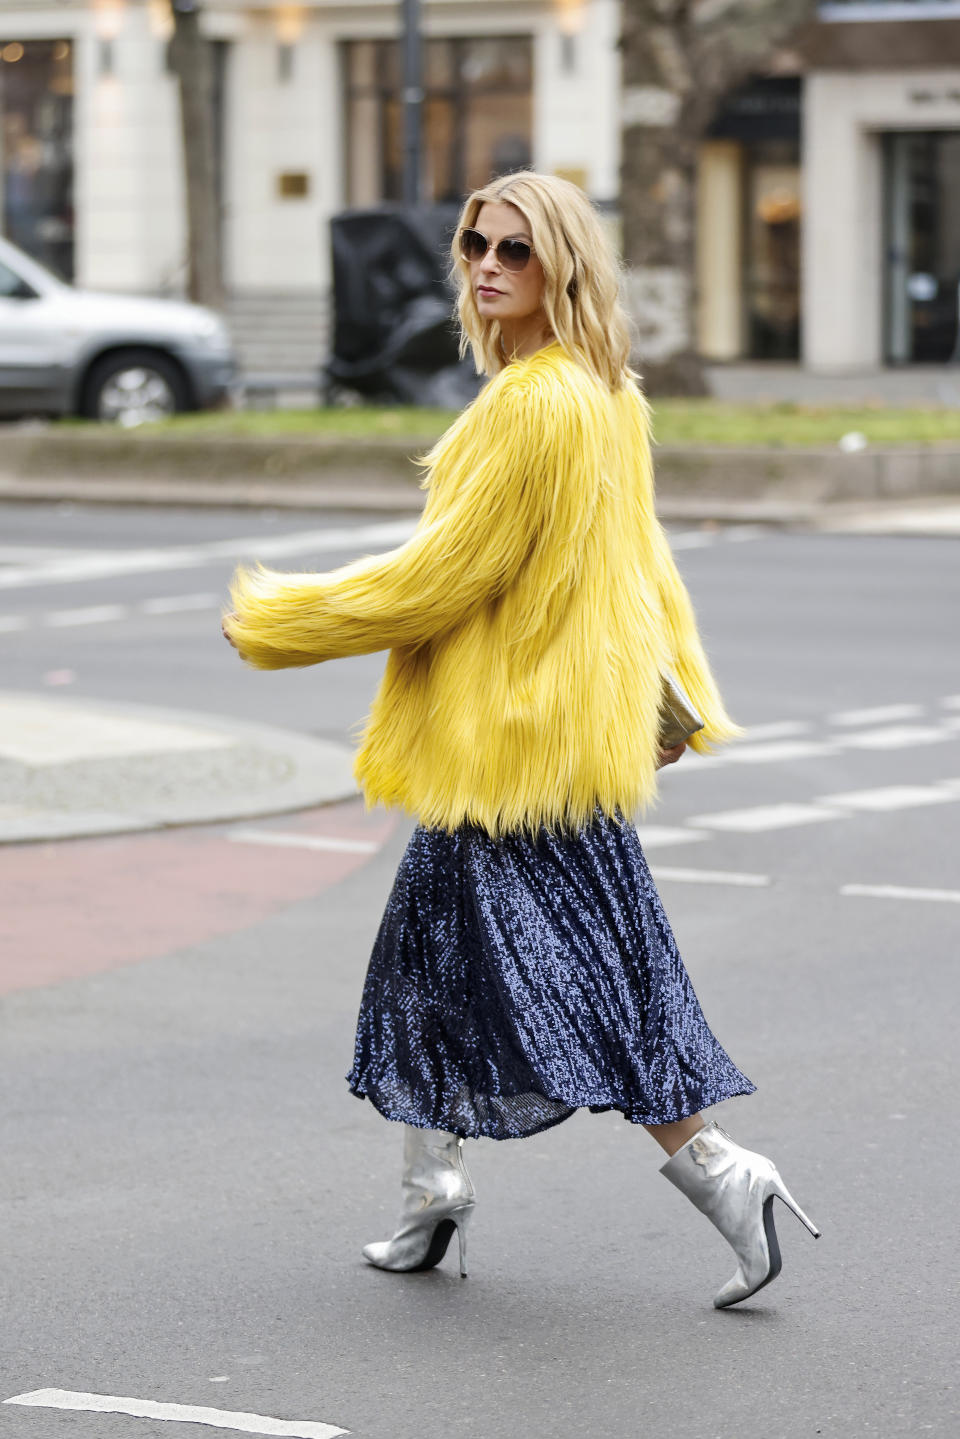 BERLIN, GERMANY - DECEMBER 14: German TV host Tanja Buelter wearing silver vintage ankle booties, a midi legth dark blue sequin skirt by Riani, a yellow faux fur jacket by Rene Lezard, sunglasses by Rodenstock and a silver clutch with snake pattern by Project Oona during a street style shooting on December 14, 2020 in Berlin, Germany. (Photo by Streetstyleshooters/Getty Images)